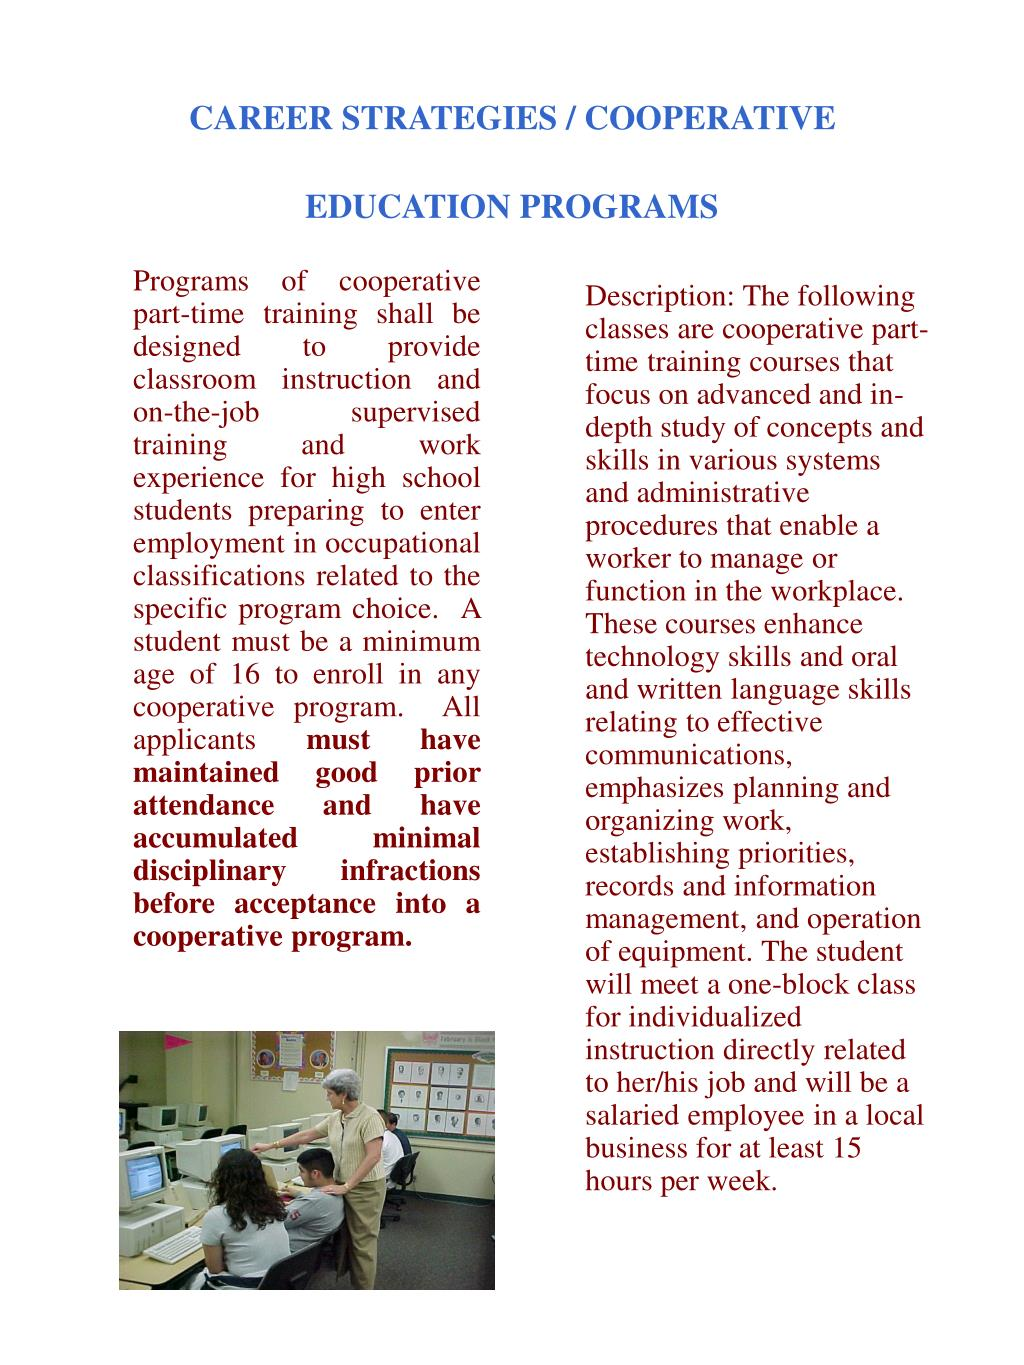 Programs of cooperative part‑time training shall be designed to provide classroom instruction and on‑the‑job supervised training and work experience for high school students preparing to enter employment in occupational classifications related to the specific program choice.  A student must be a minimum age of 16 to enroll in any cooperative program.  All applicants